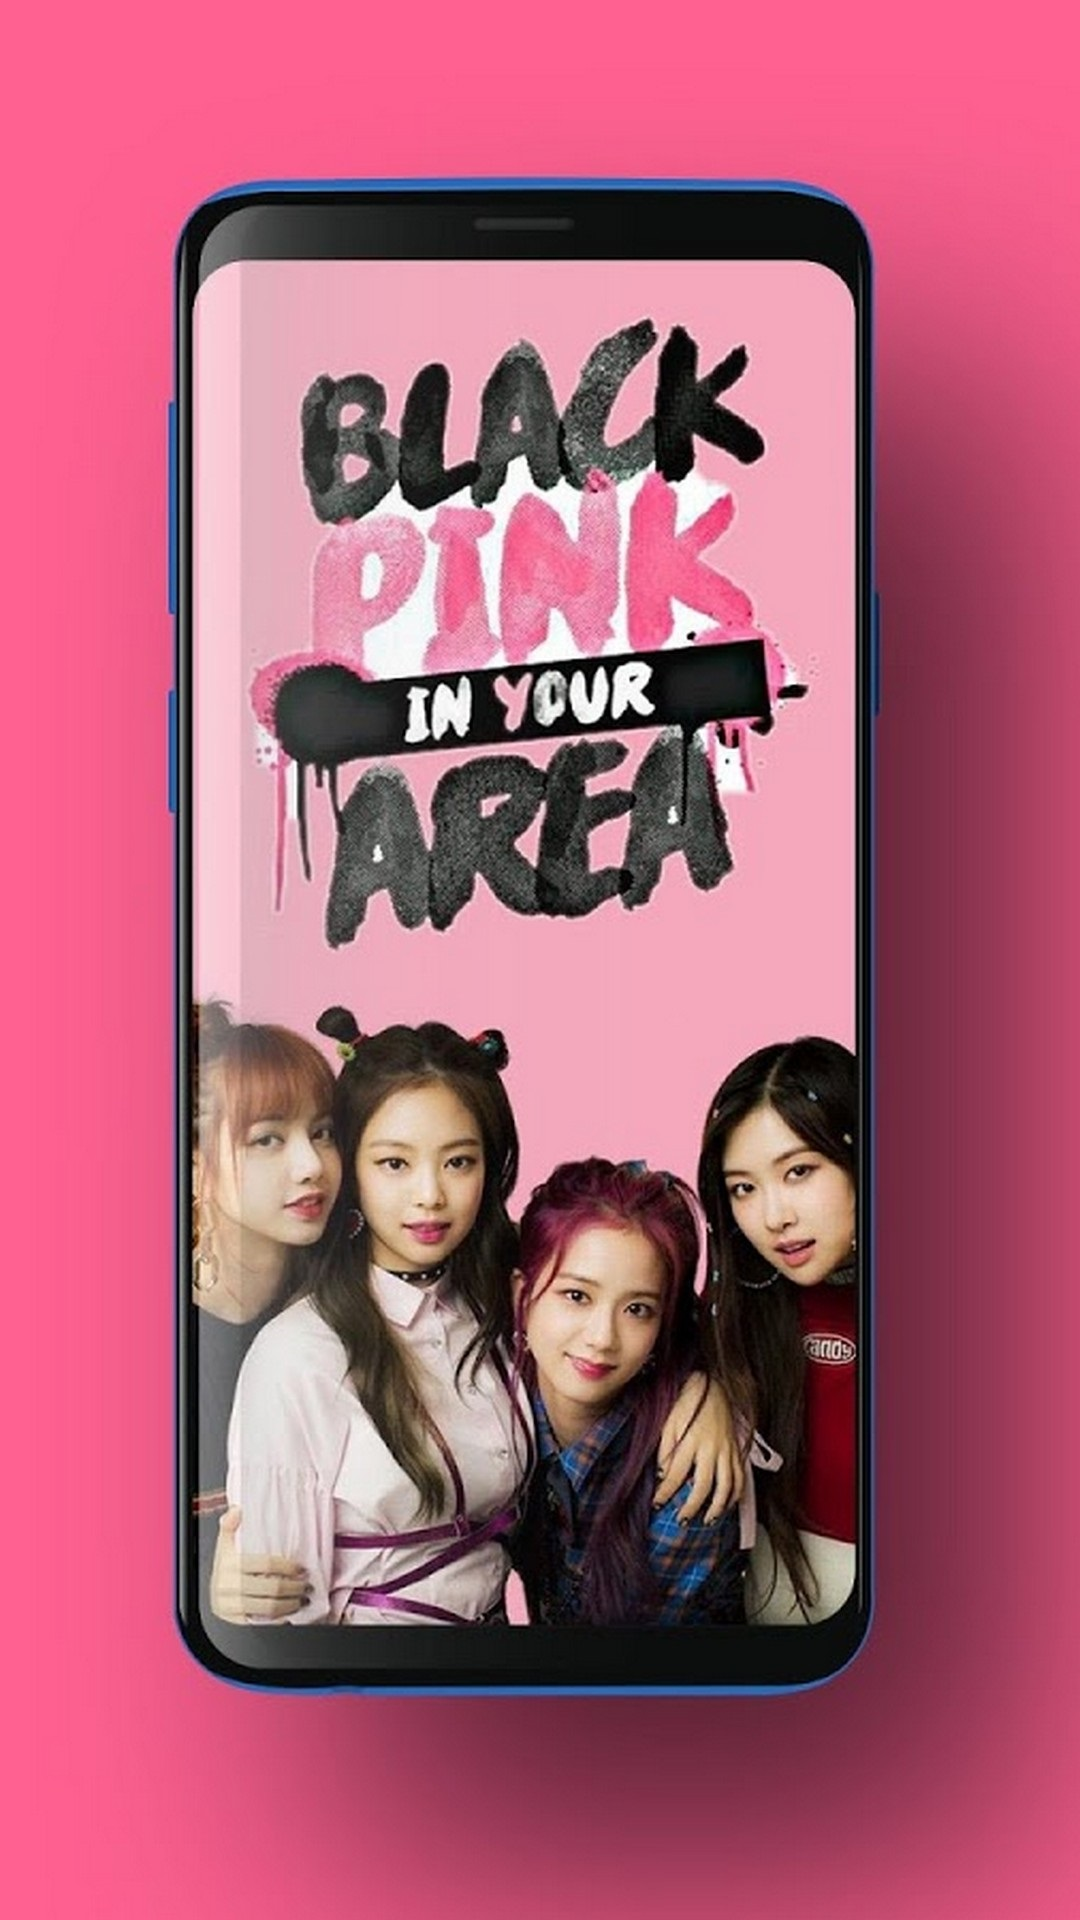 Blackpink Hd Wallpapers For Android With High Resolution Blackpink In Your Area 1080x1920 Wallpaper Teahub Io